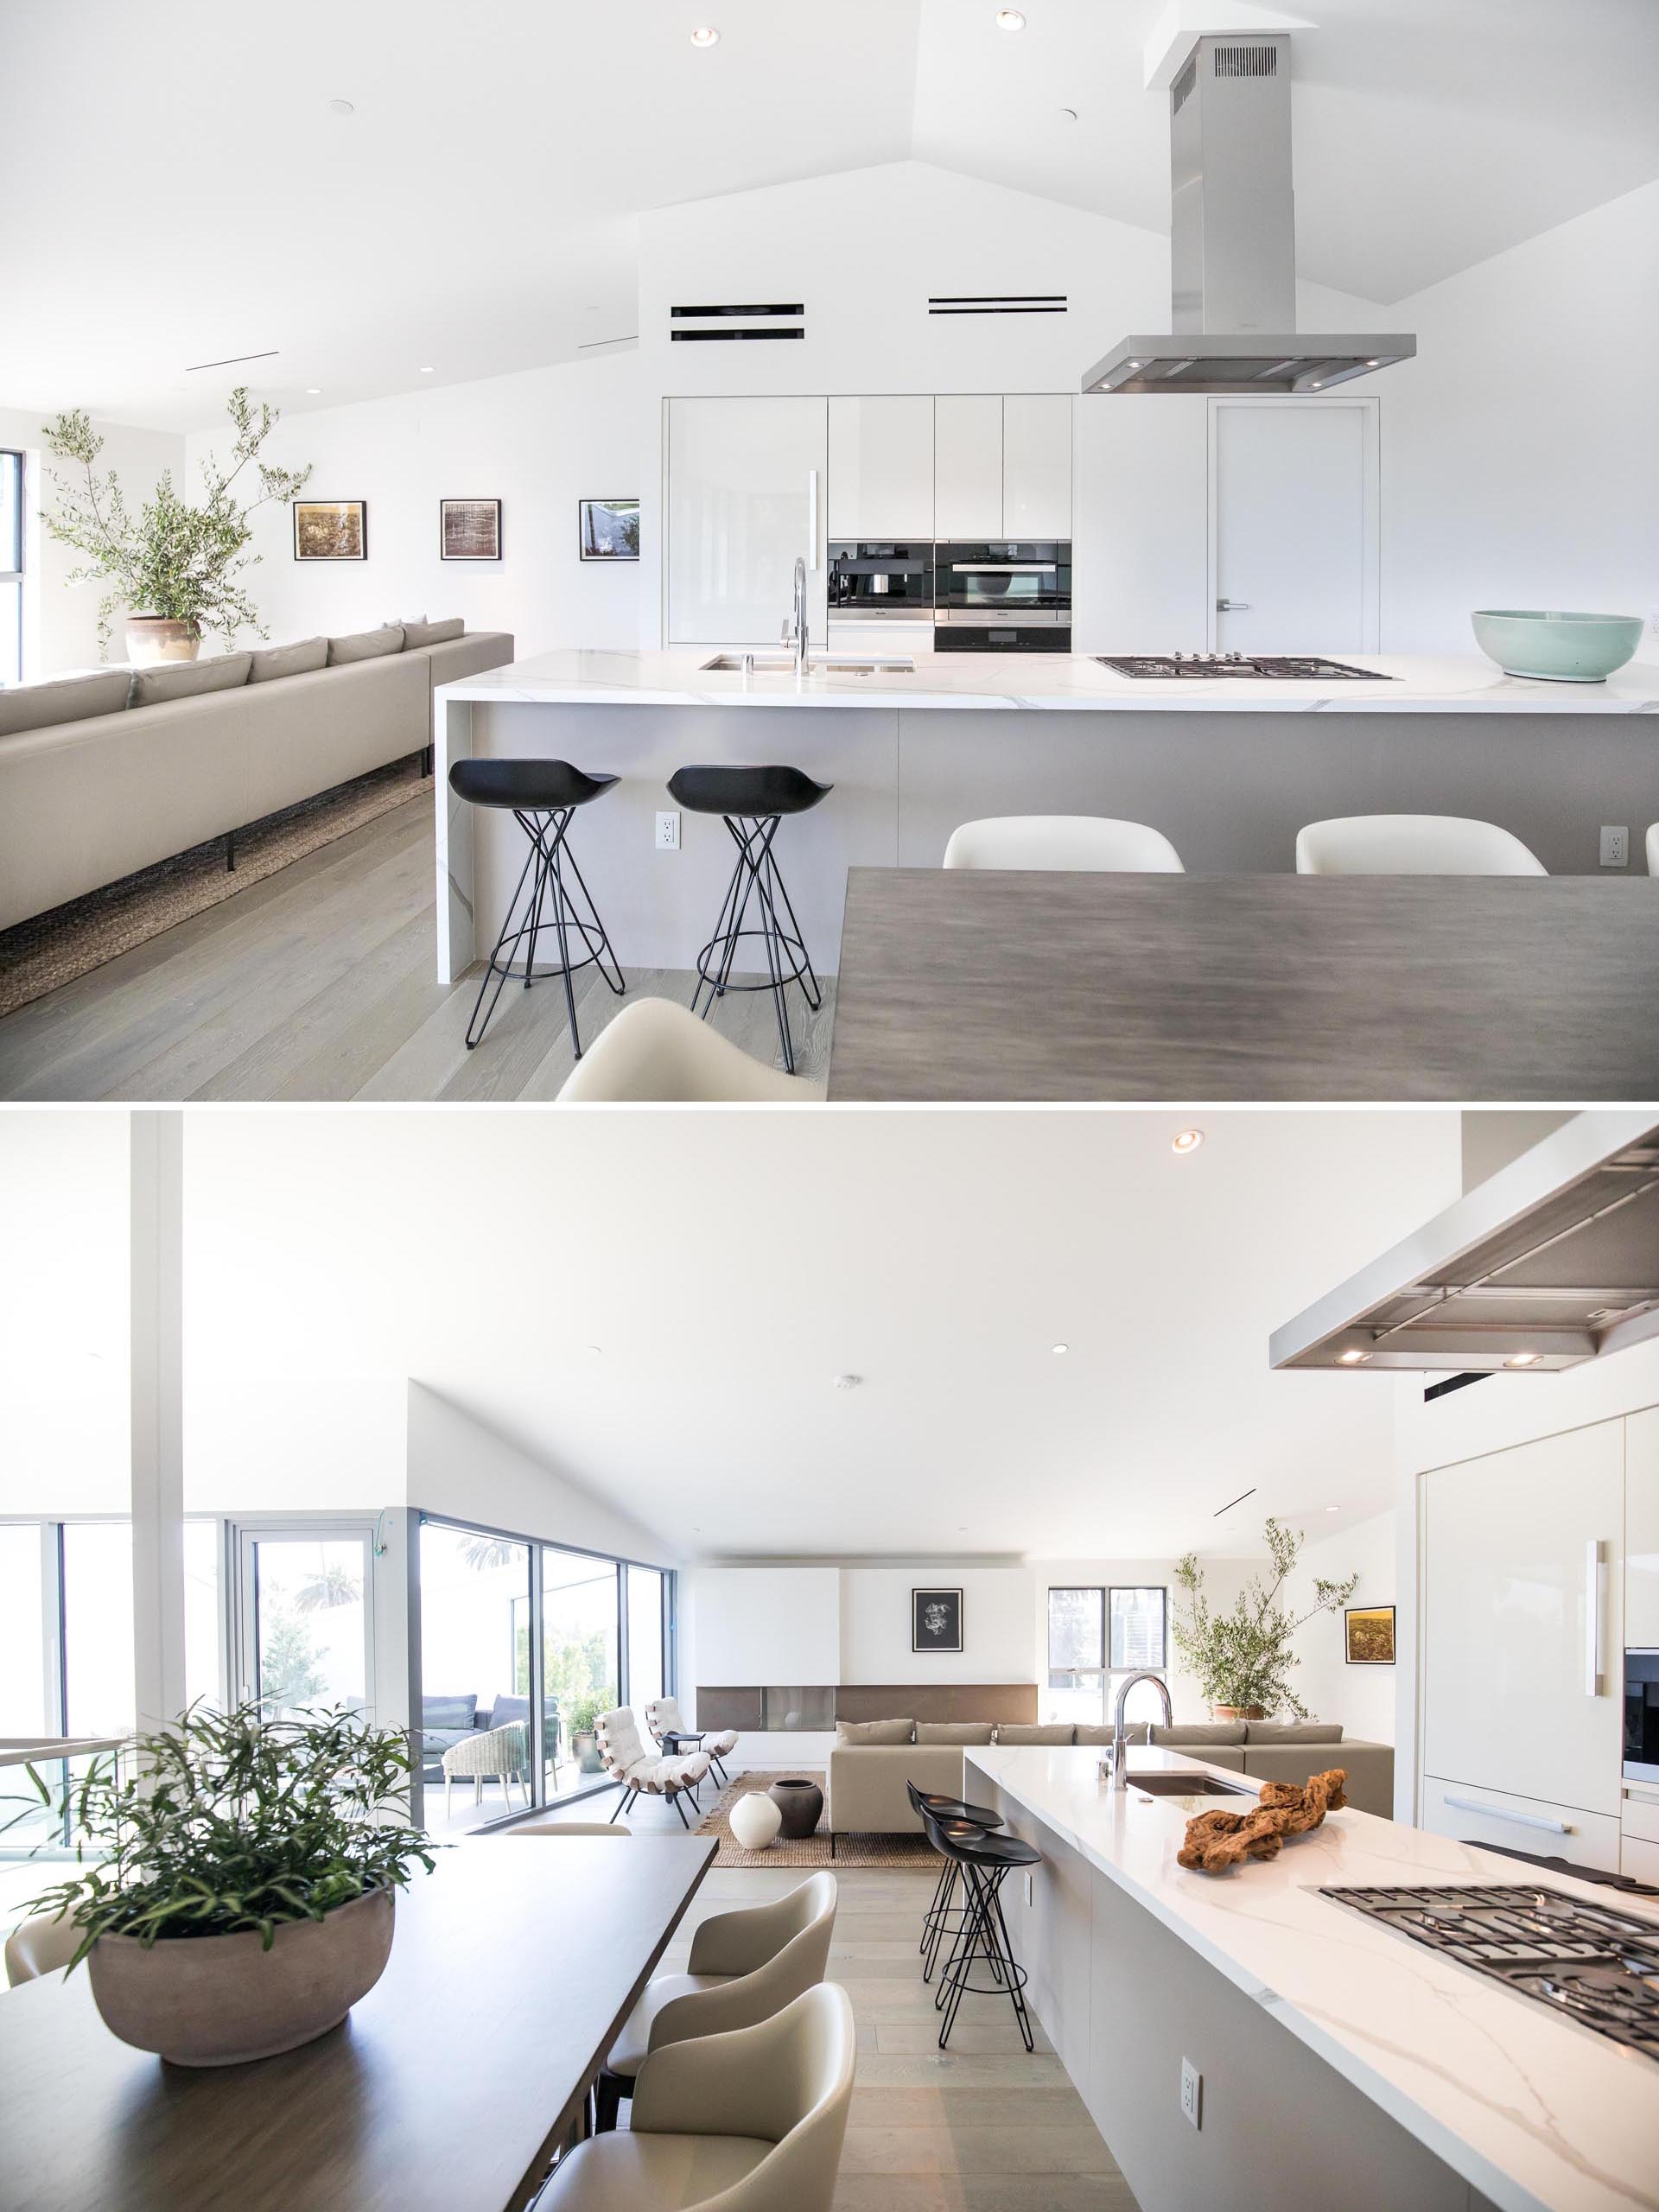 A modern plan open kitchen with white cabinets and white countertop.